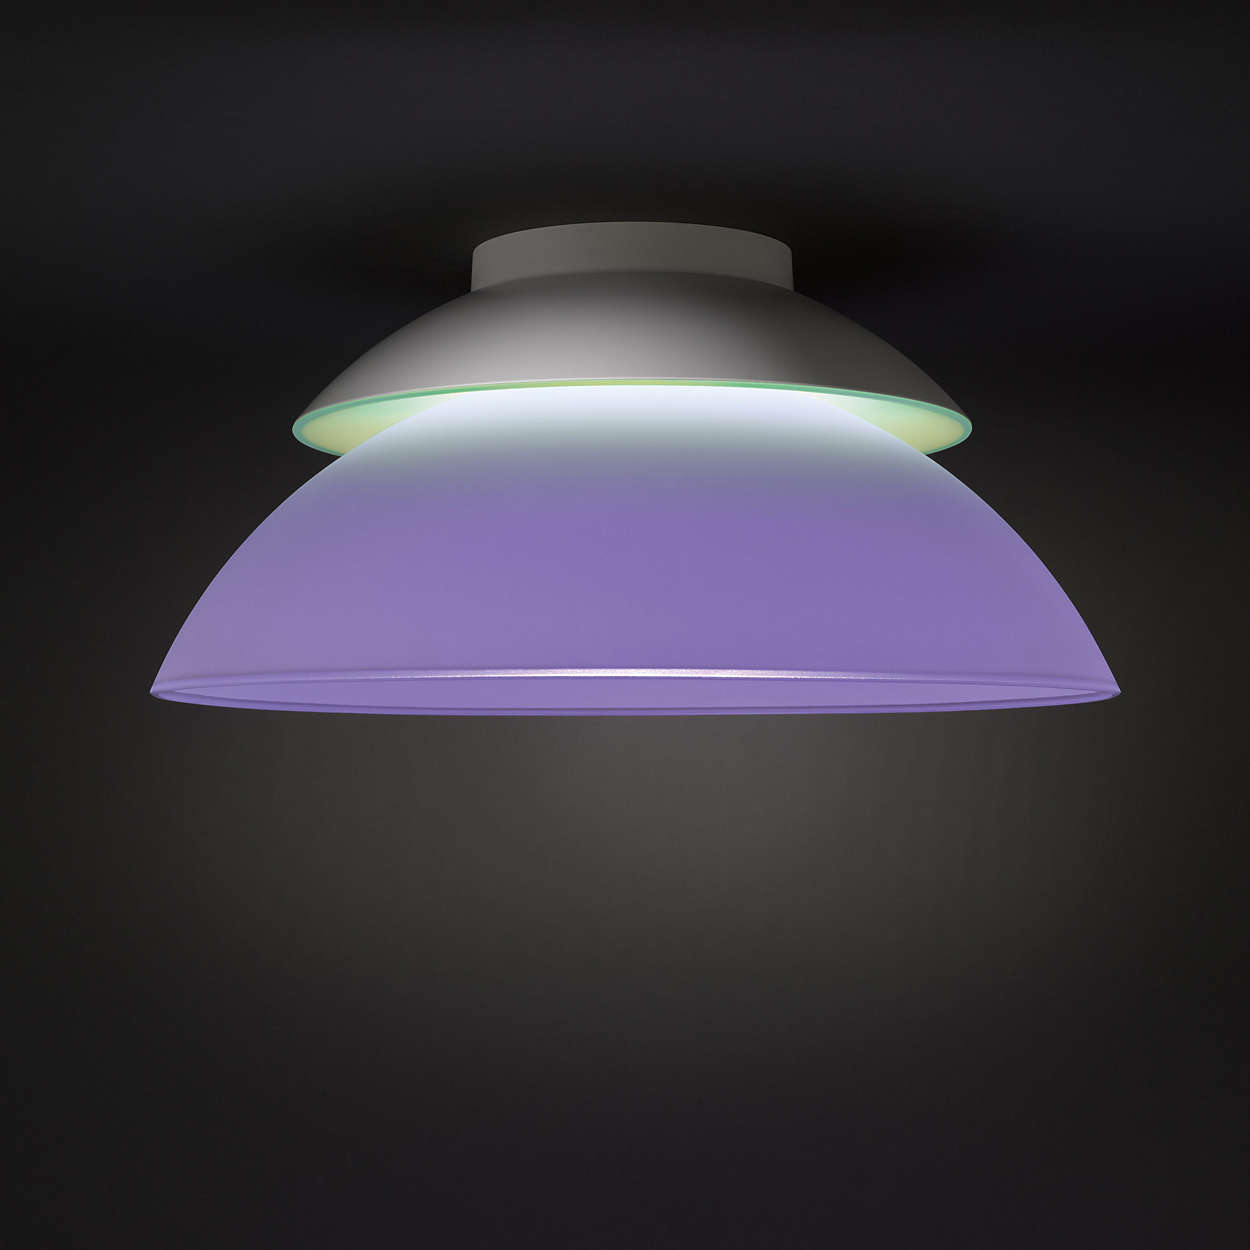 7120131PH-beyond-philips-hue-stropni-svetlo